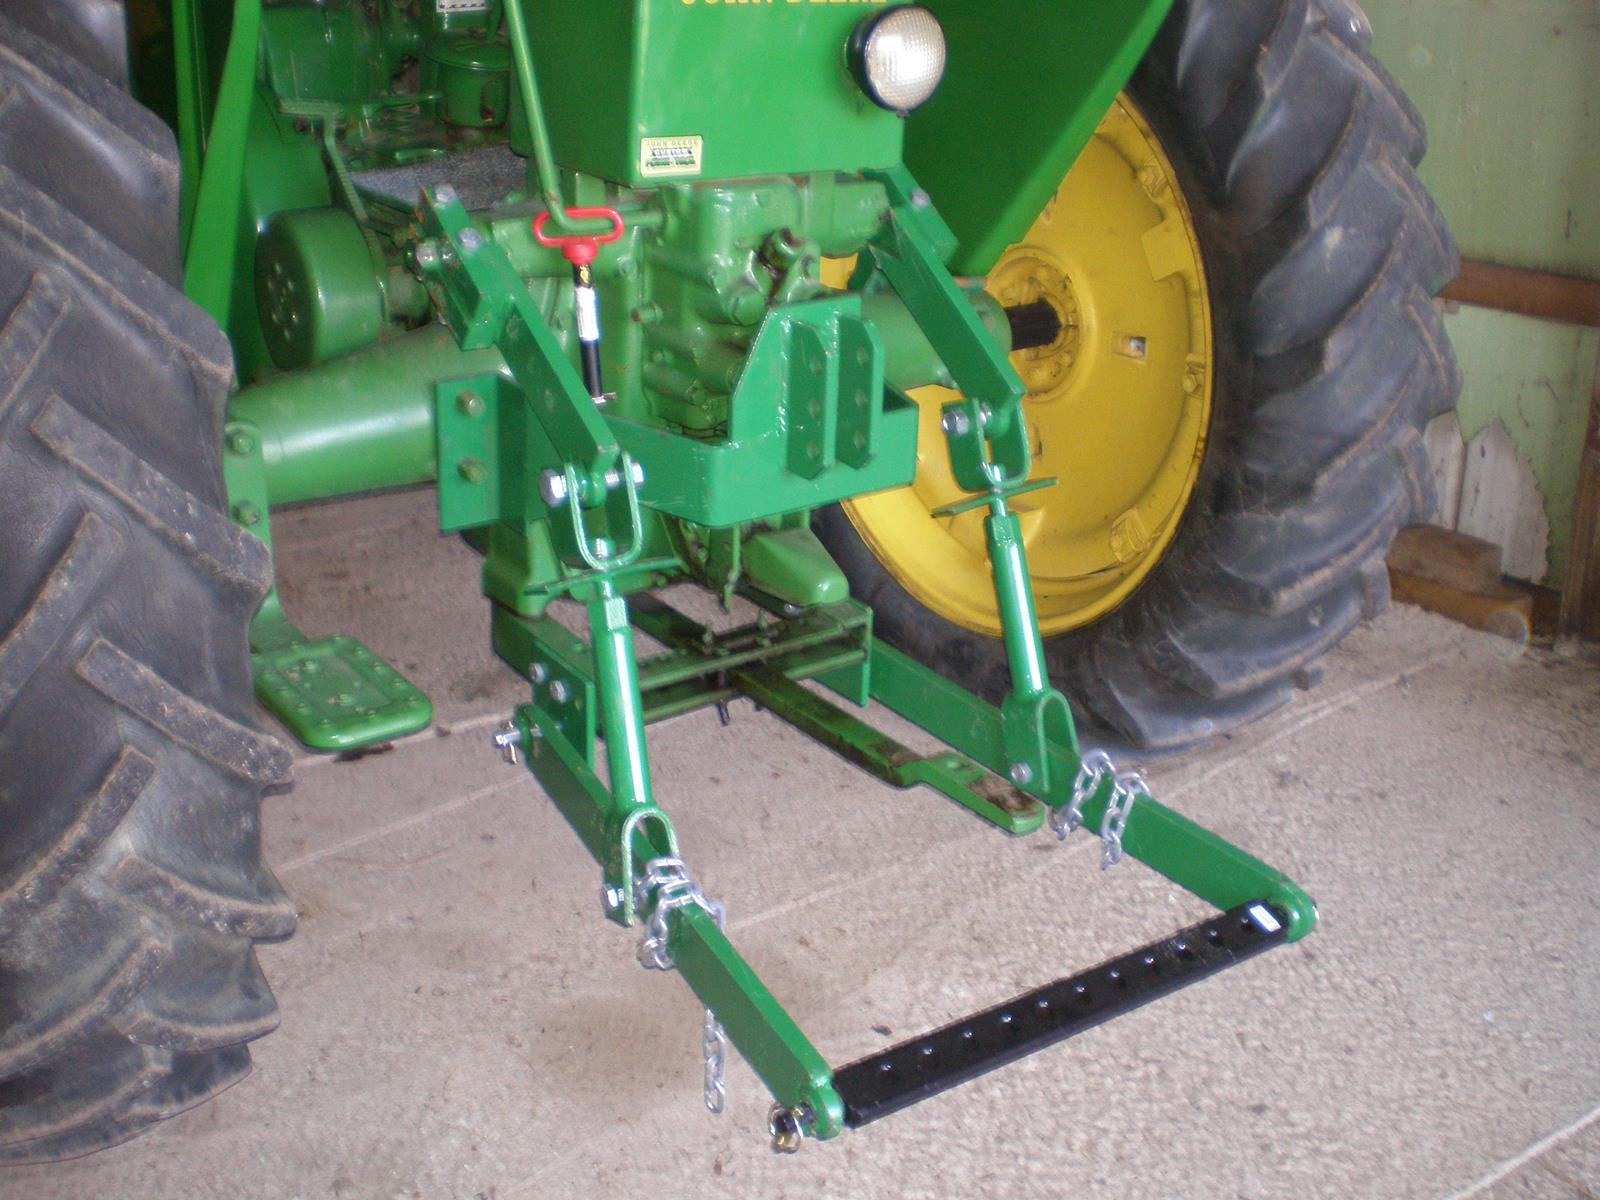 Tractor 3 Point Hitch Conversions : John deere b point hitch conversion car interior design